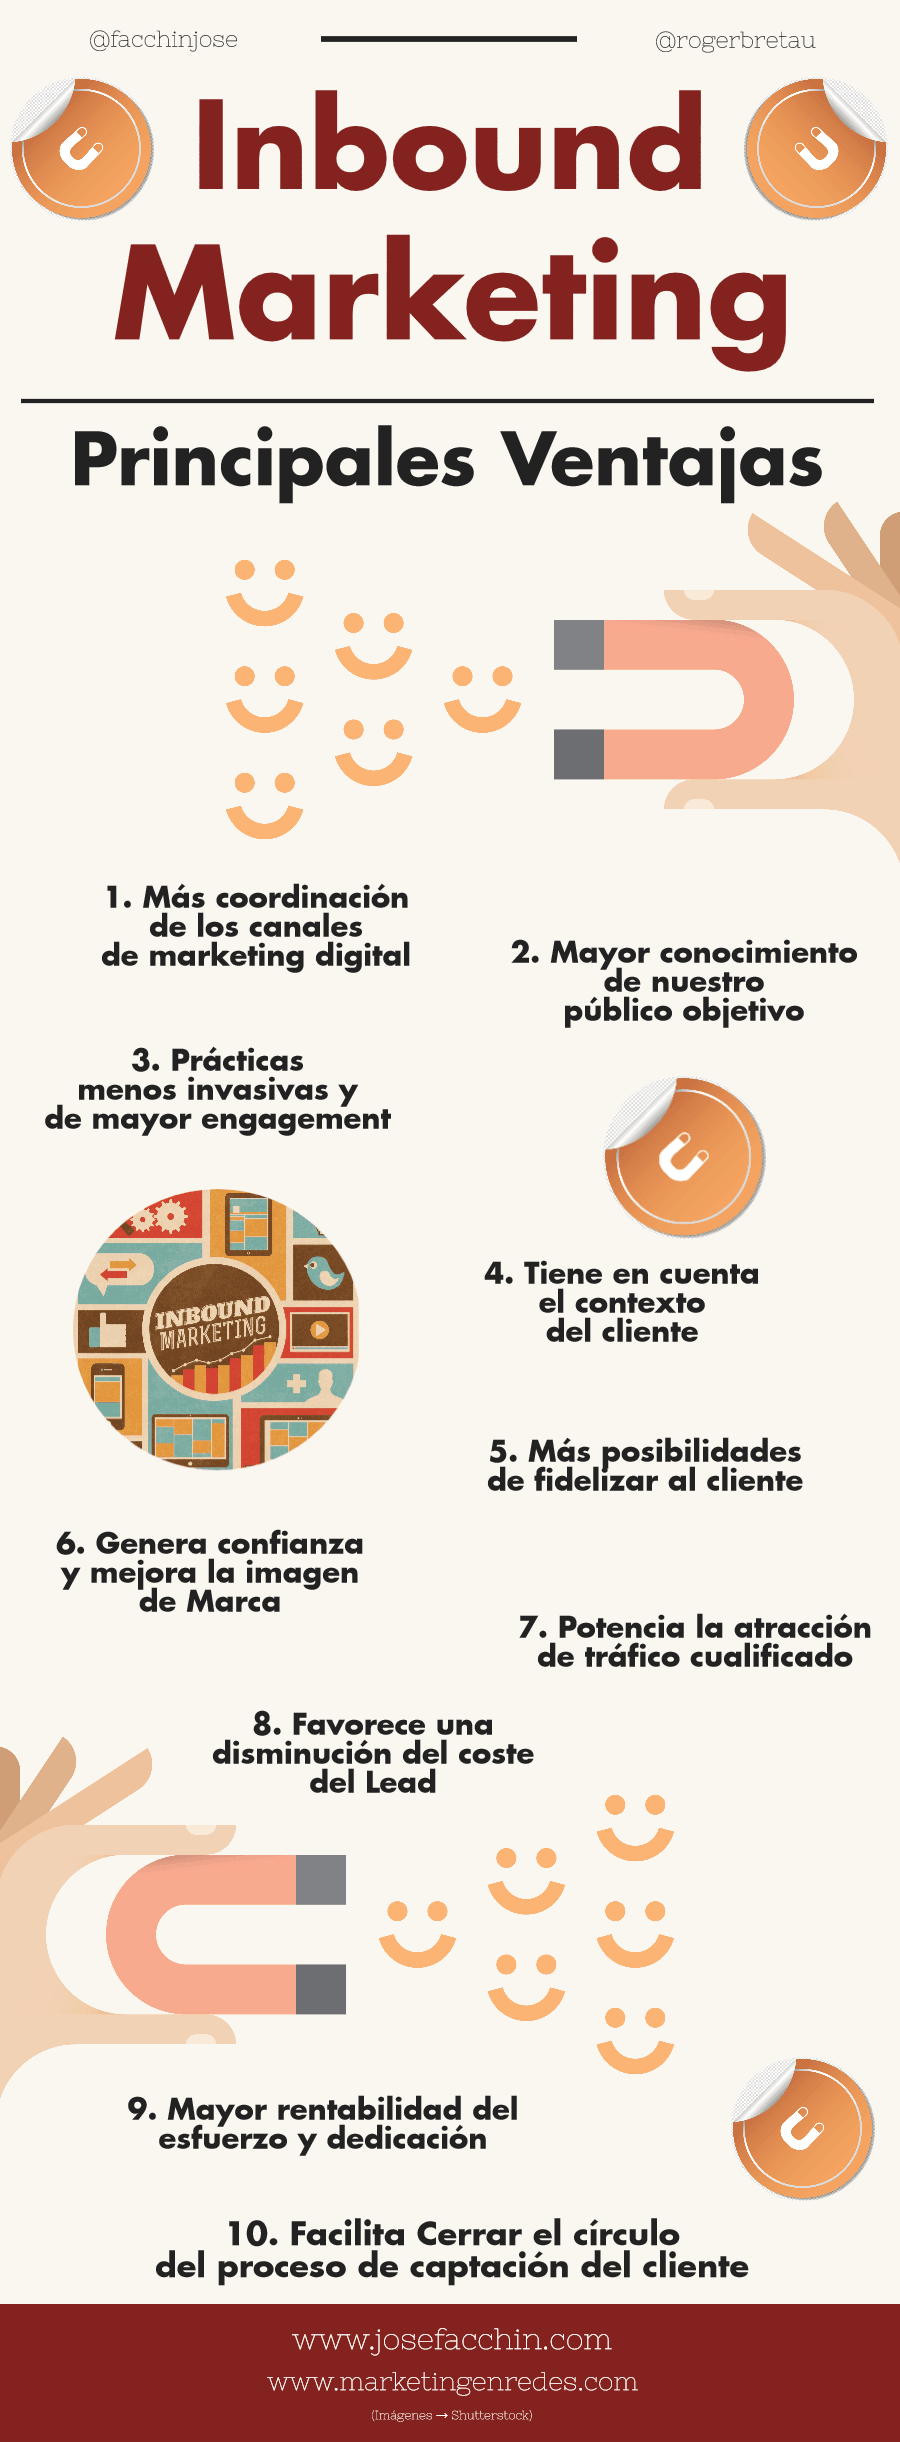 Ventajas del Inbound Marketing